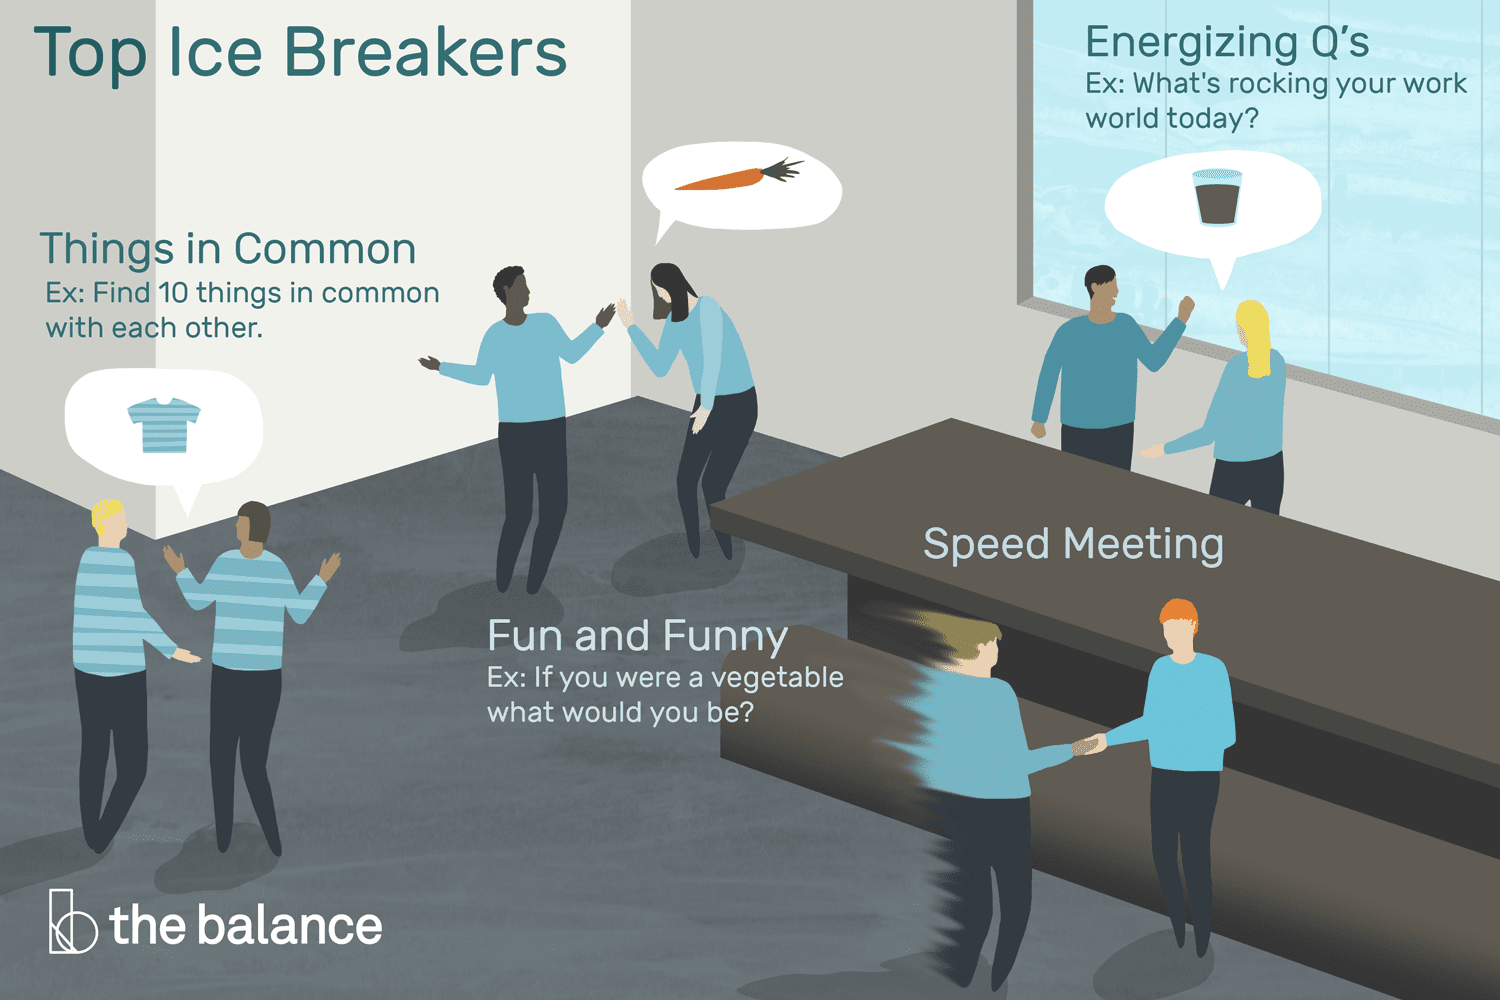 Top 10 Ice Breakers For Work Events